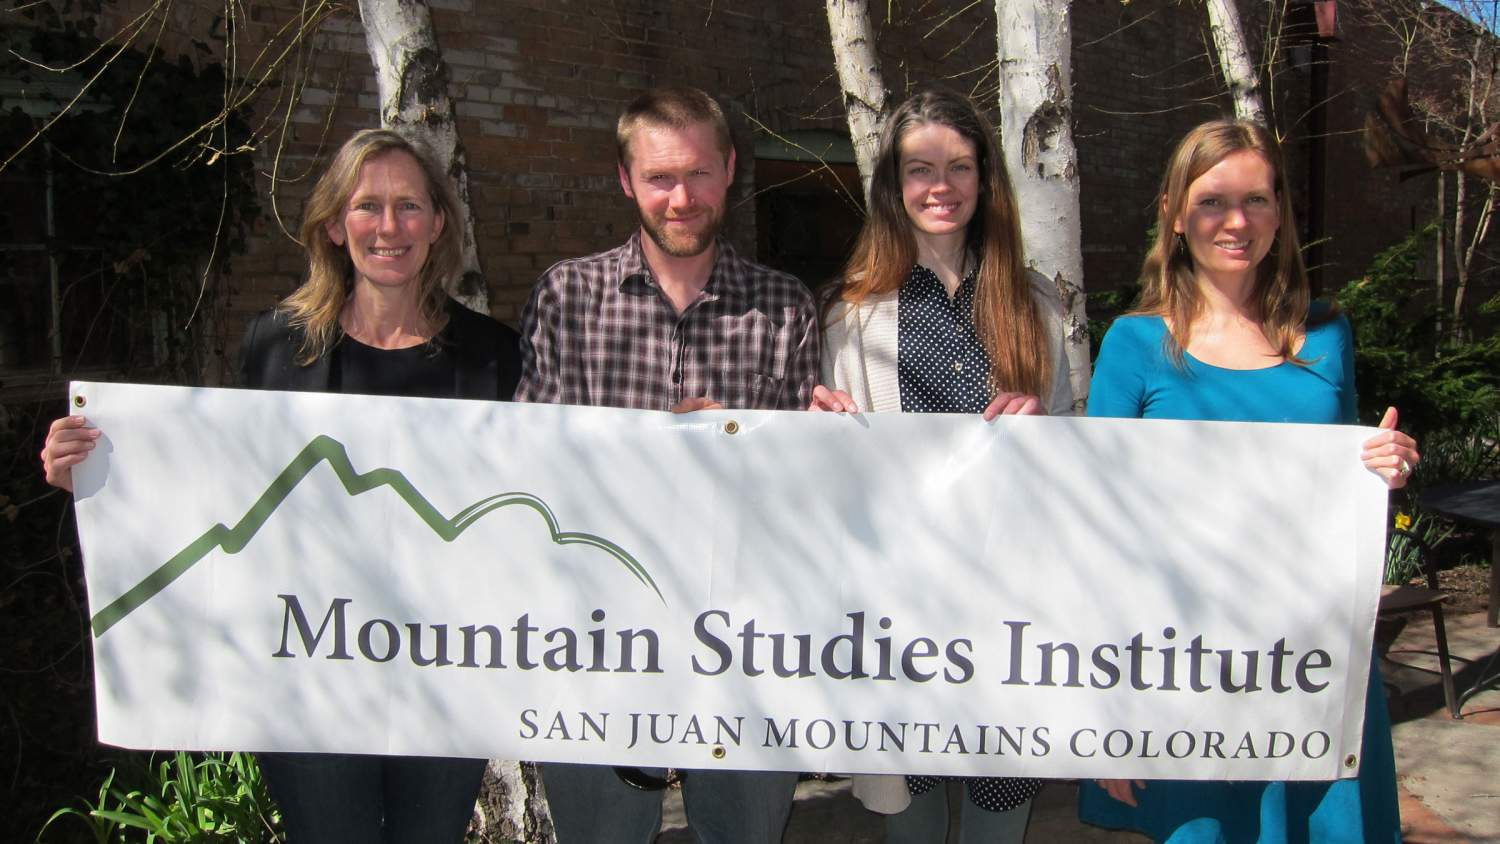 Mountain Studies Institute volunteers at an event